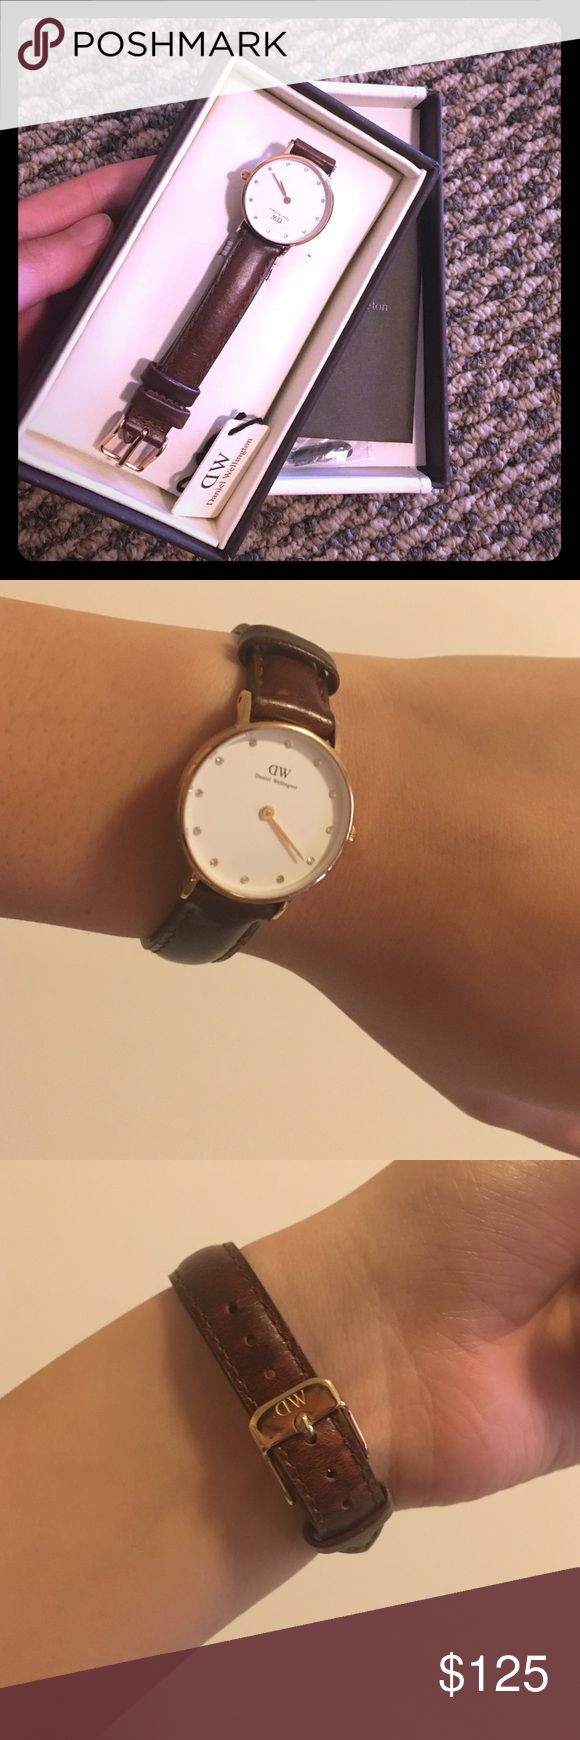 Daniel Wellington watch auth Bought it last year. Only wore once. Since I am not the person who like wearing watches, I want to sell it. It is in the perfect condition. Still has the warranty card inside. This is a small case diameter. The original price is around 160 dollars including the tax. Now, I would like to sell at 125. Daniel Wellington Accessories Watches